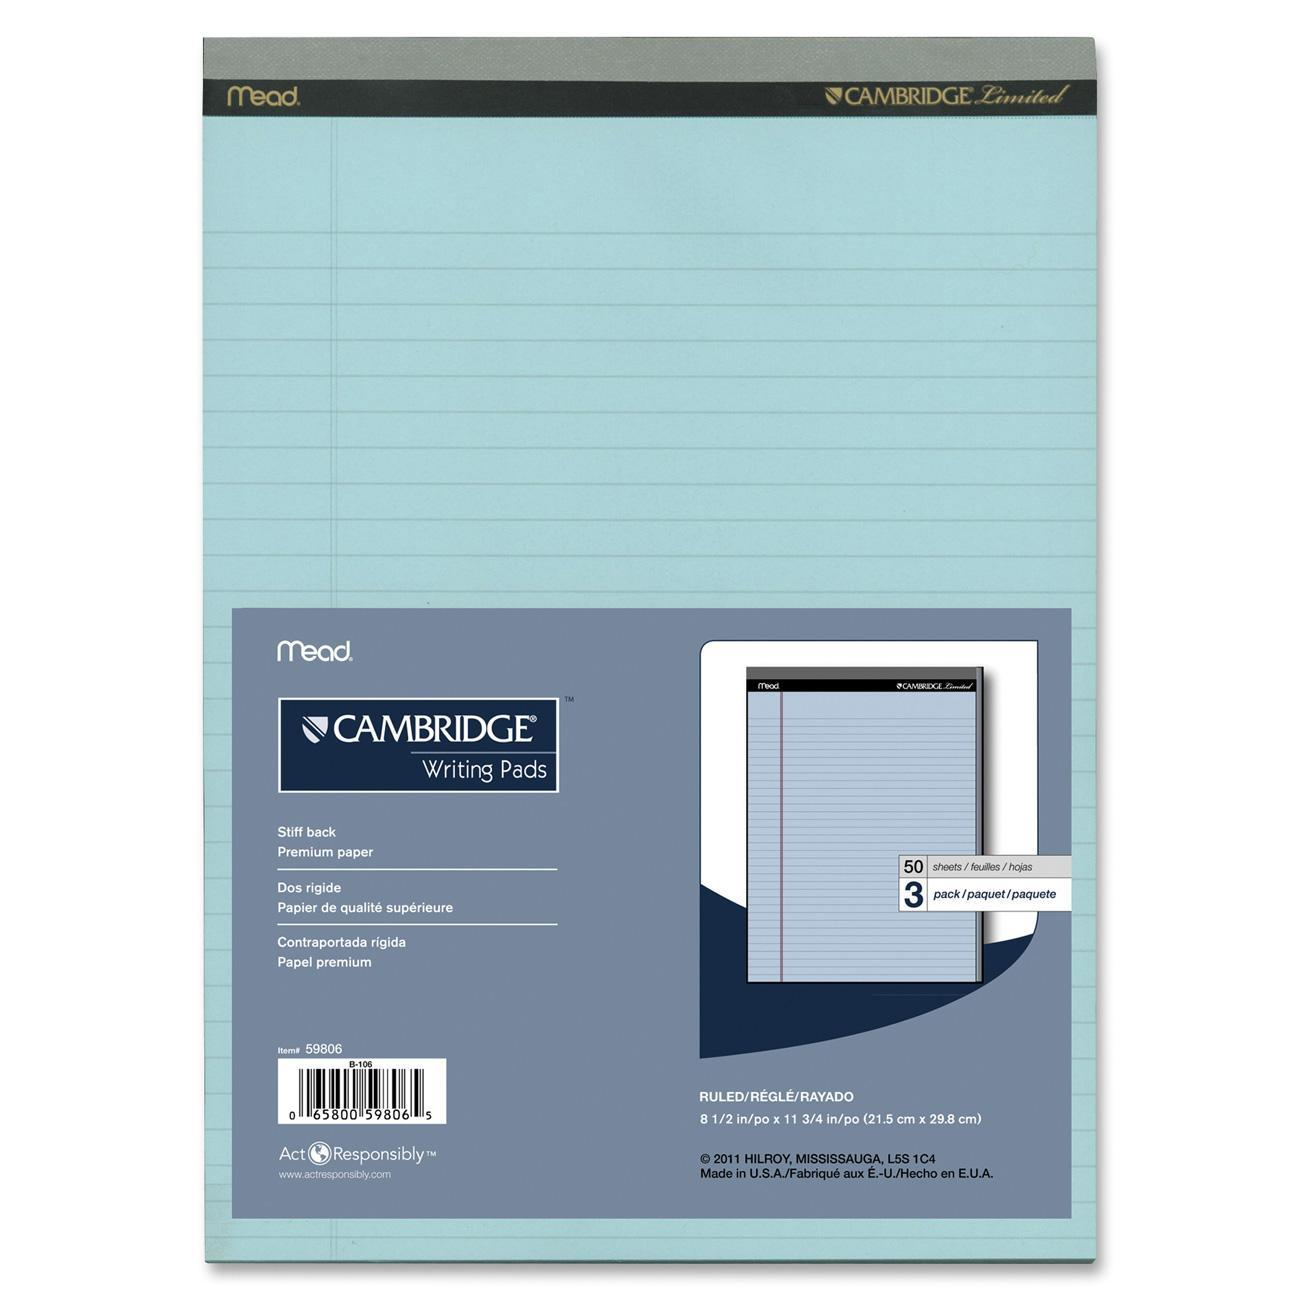 "Mead Cambridge Writing Pad 3 Pack, 8.5"" x 11"" (59806)"